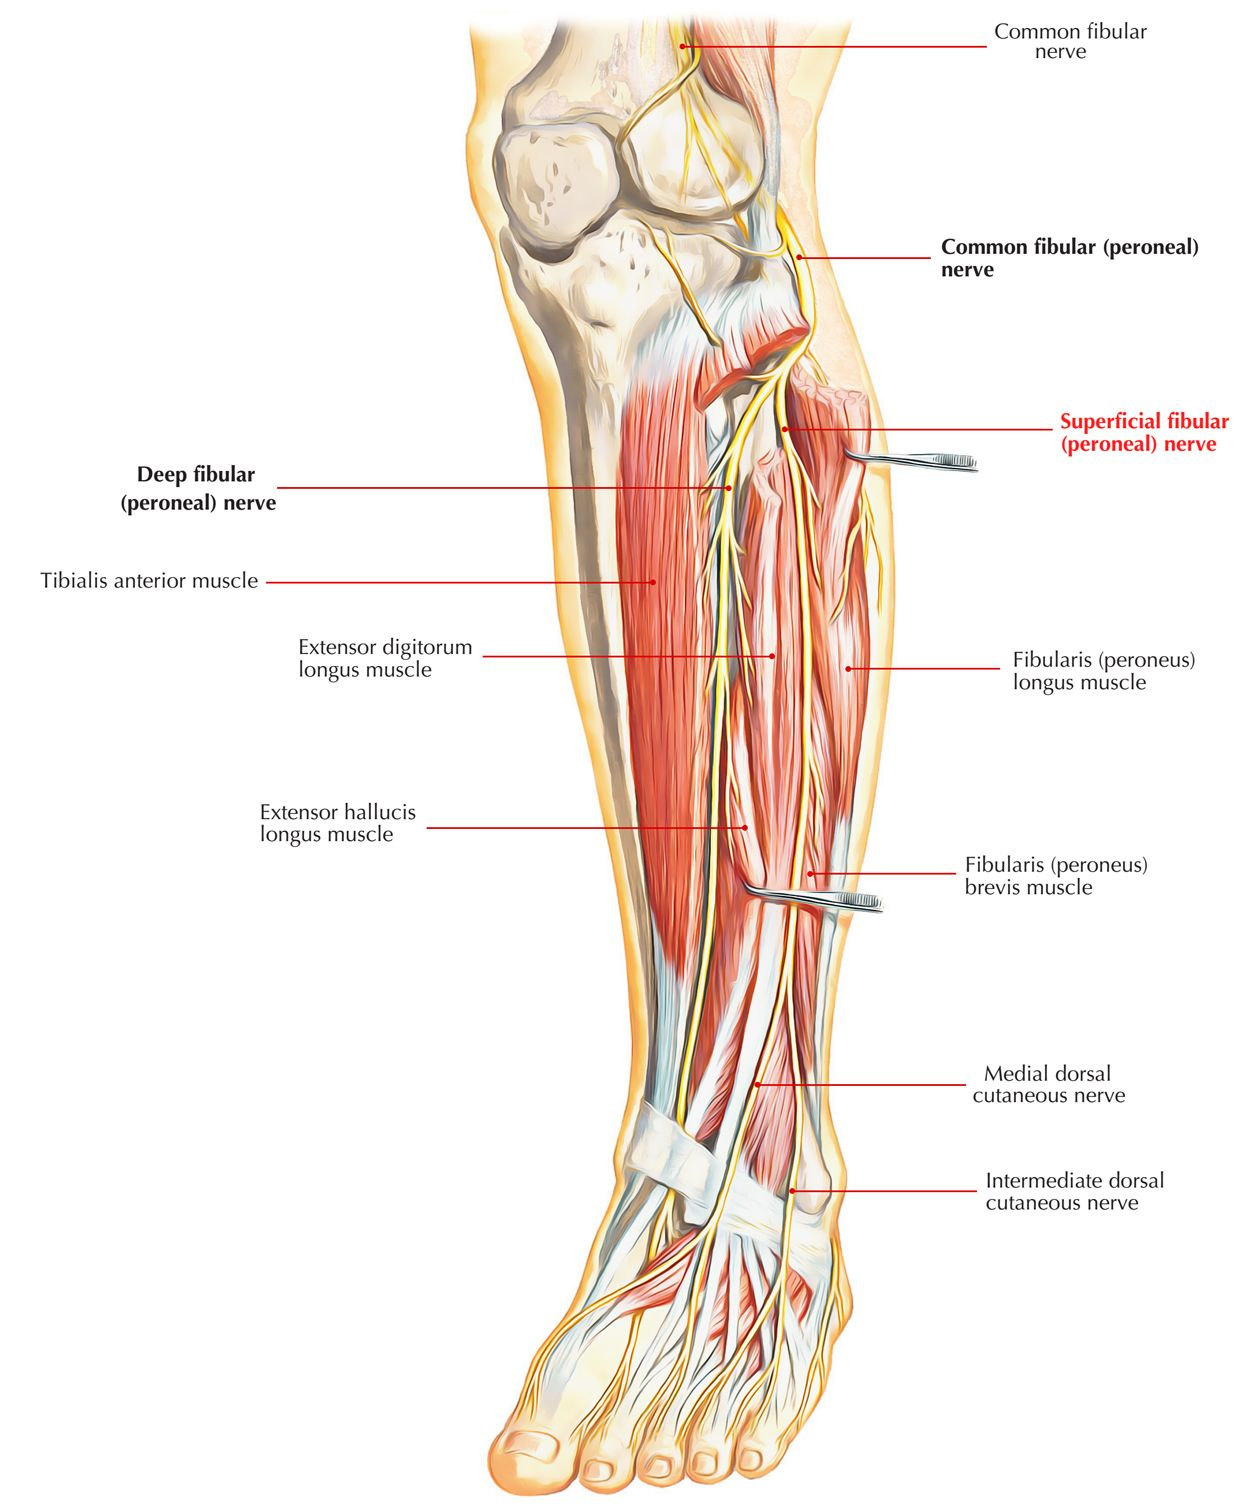 hight resolution of foot nerve diagram wiring diagram inside foot diagram nerve endings foot nerve diagram